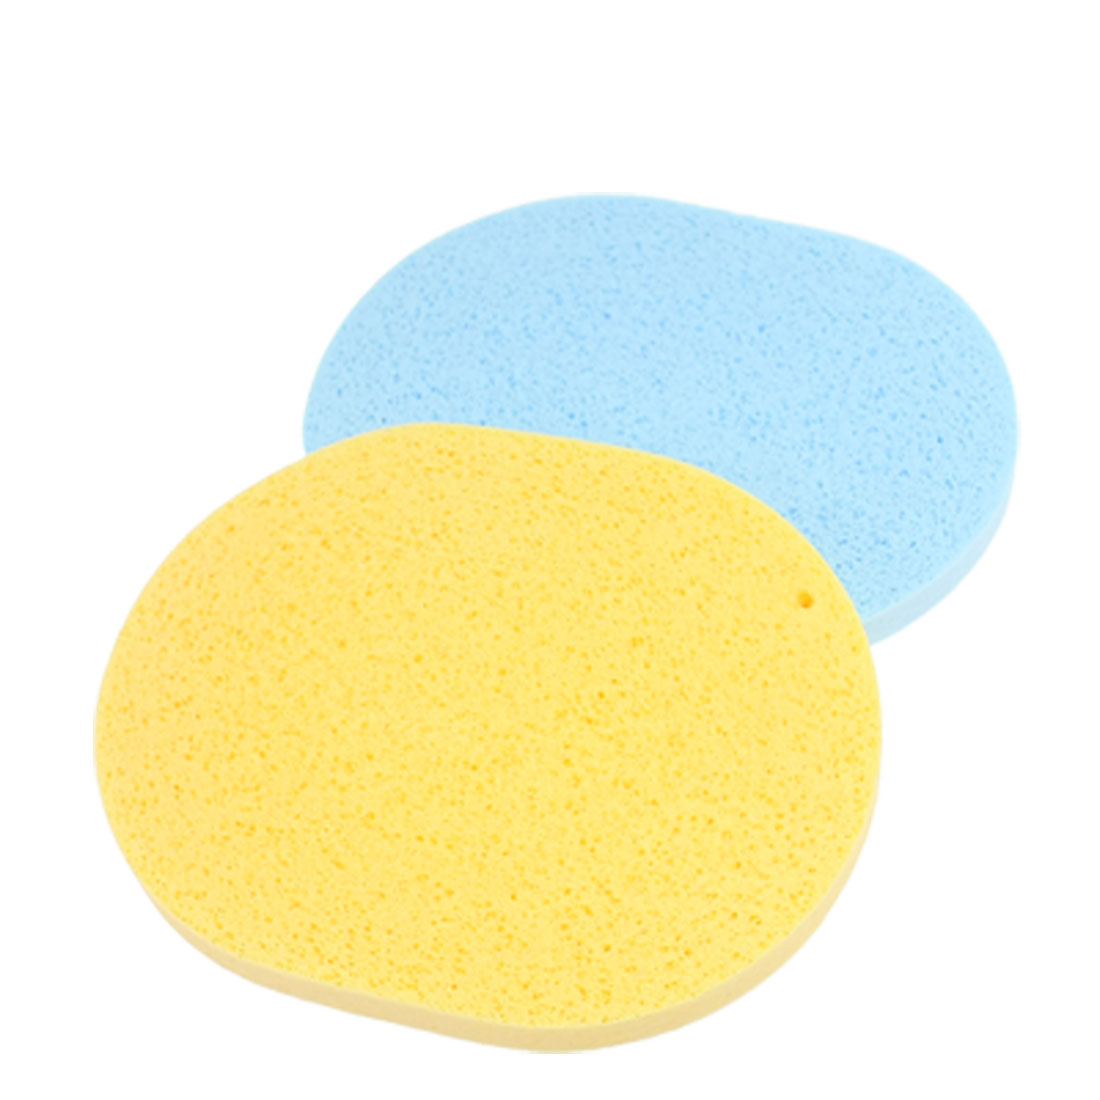 2 Pcs Soft Face Washing Cleansing Sponges Pads Puff for Women